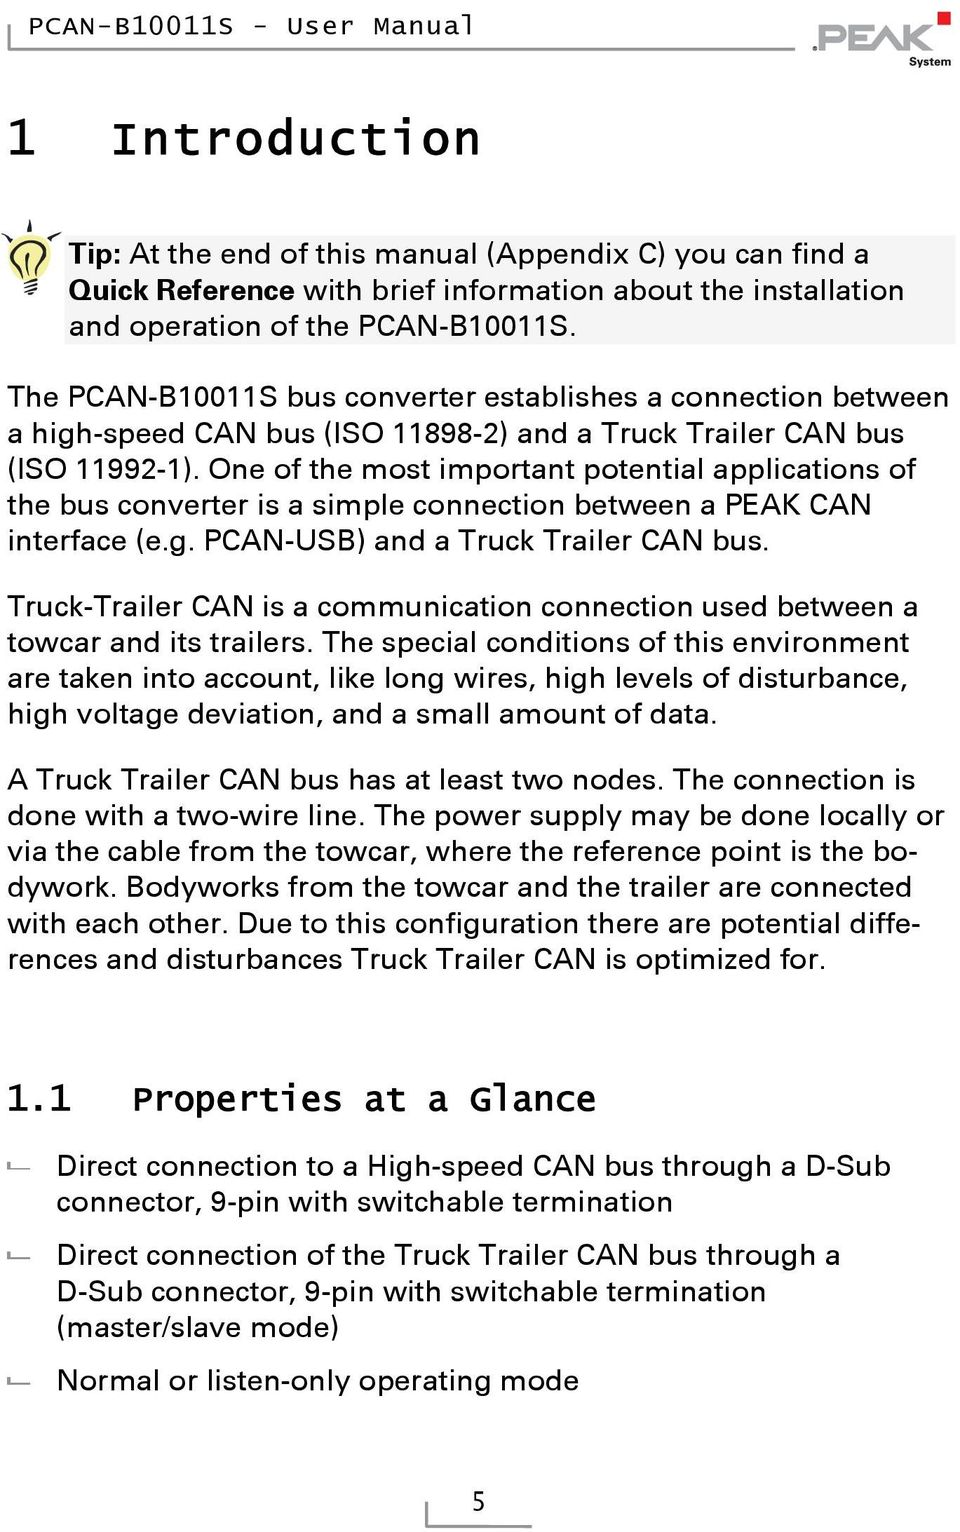 One of the most important potential applications of the bus converter is a simple connection between a PEAK CAN interface (e.g. PCAN-USB) and a Truck Trailer CAN bus.